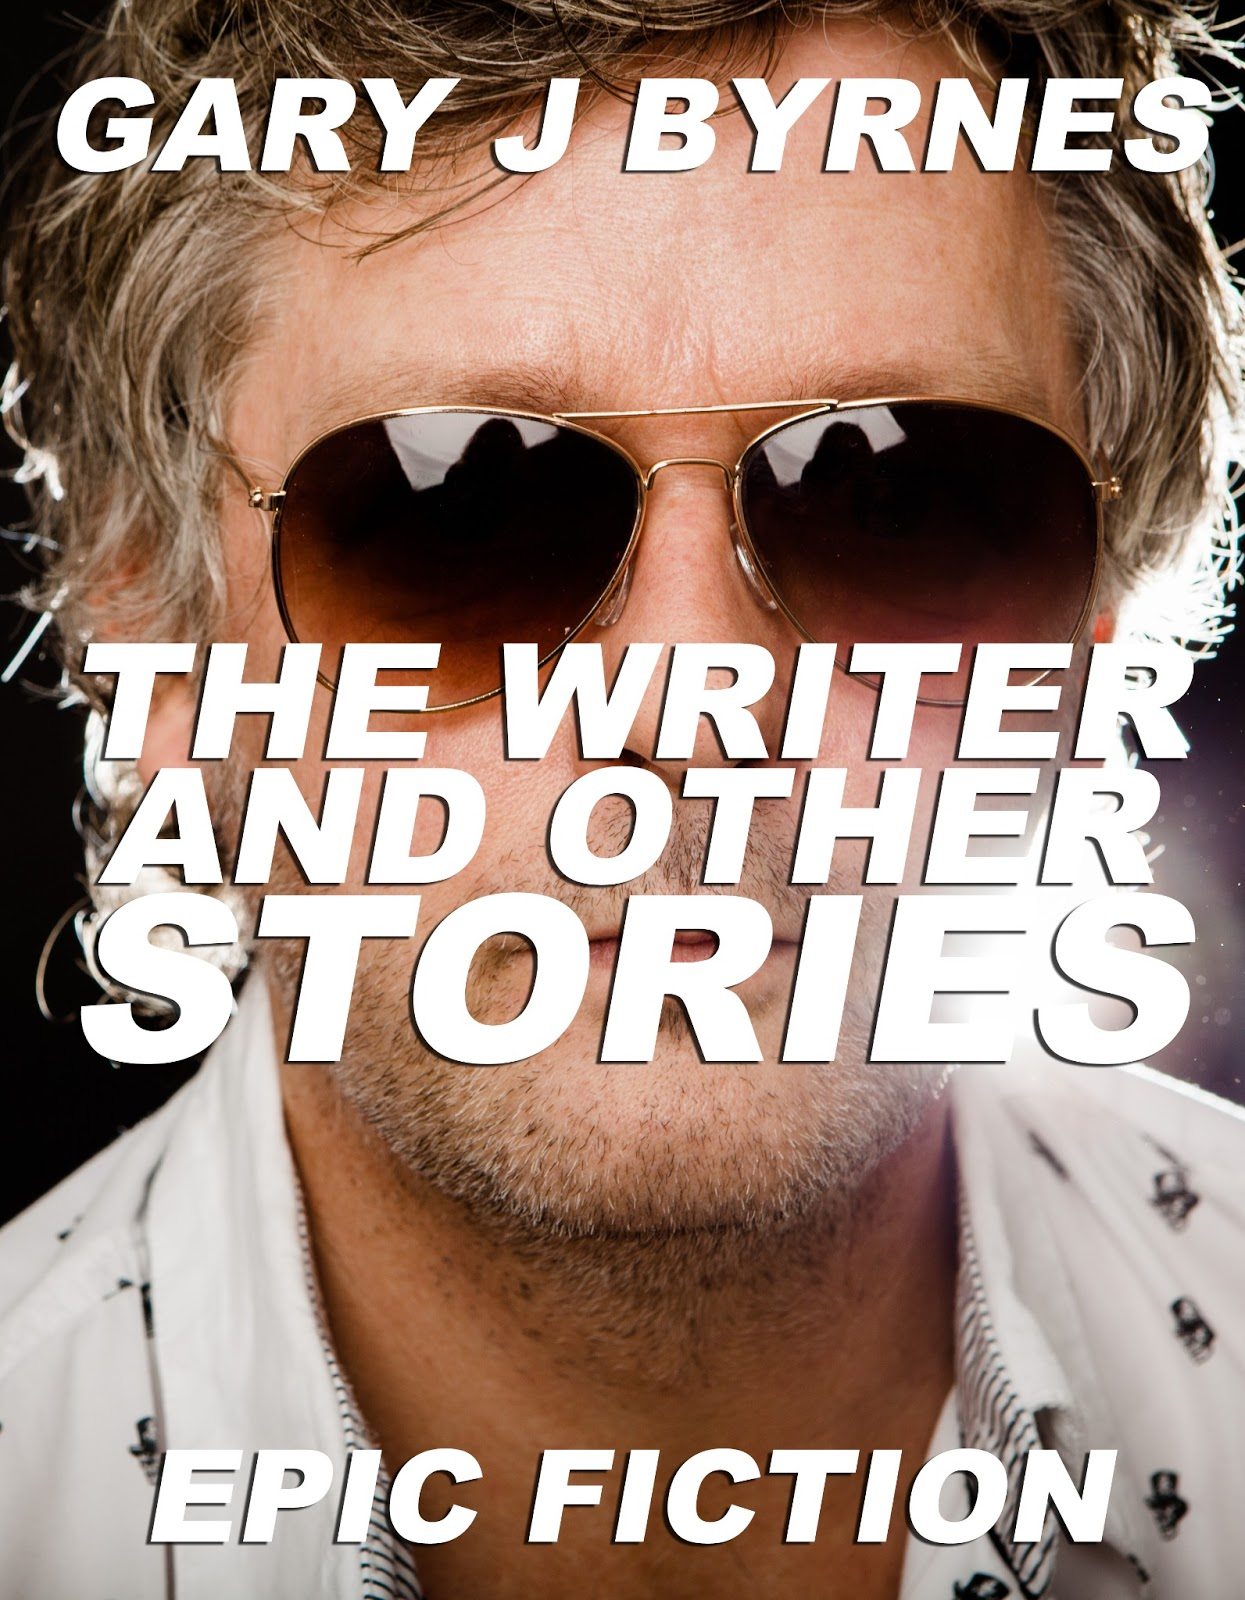 Gary J Byrnes, The Writer and Other Stories